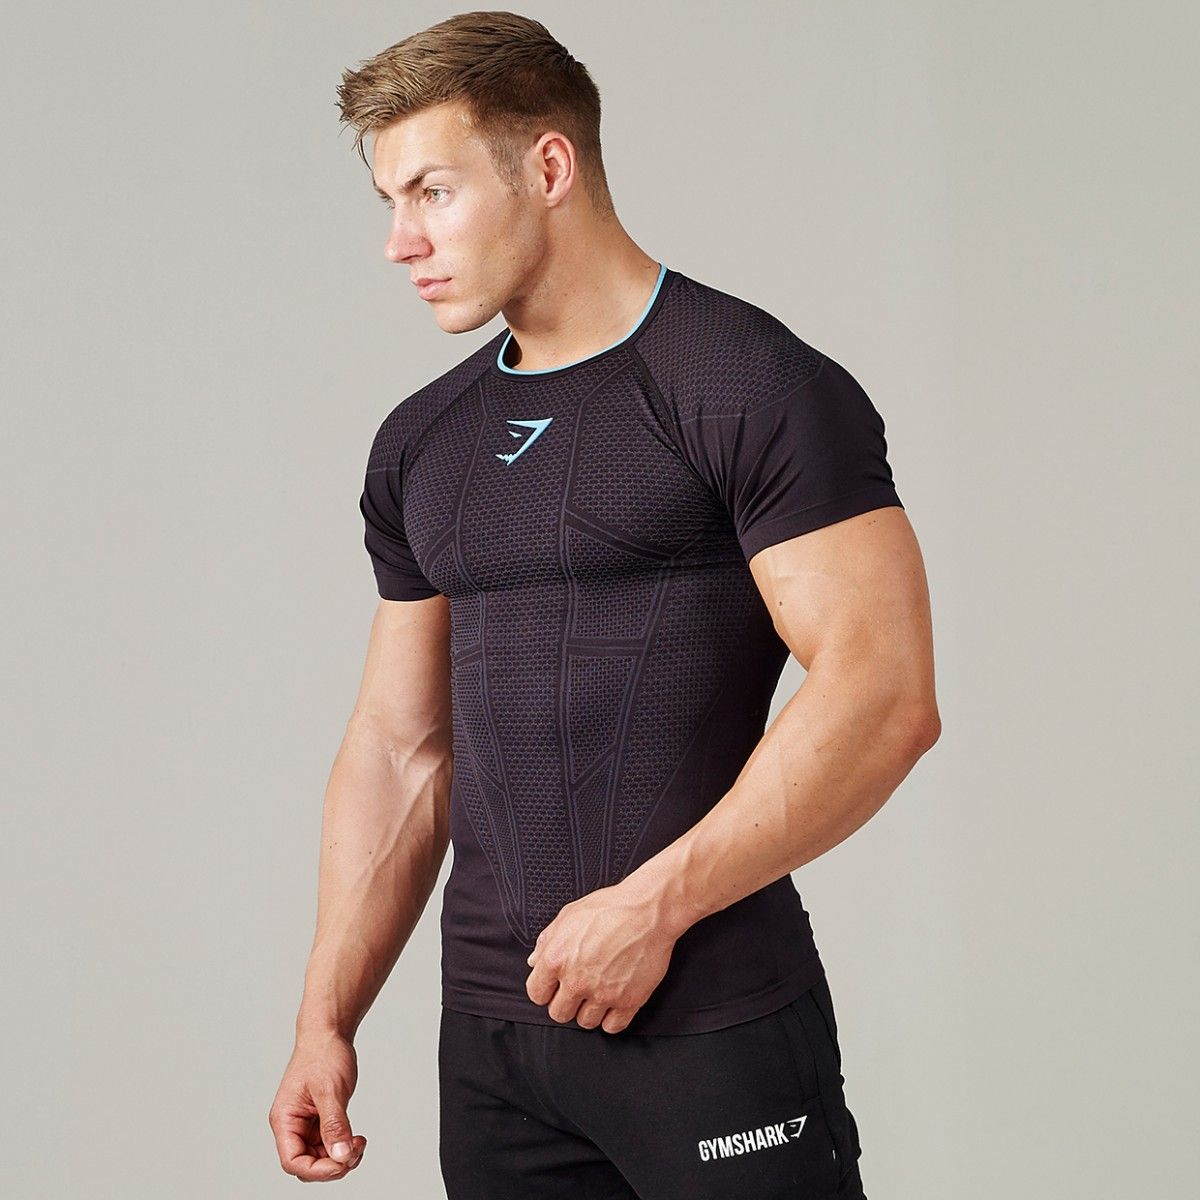 Gymshark Onyx Seamless T-Shirt - Black - New Releases - Featured - Mens | male outfit for uc804ubcf5 ...